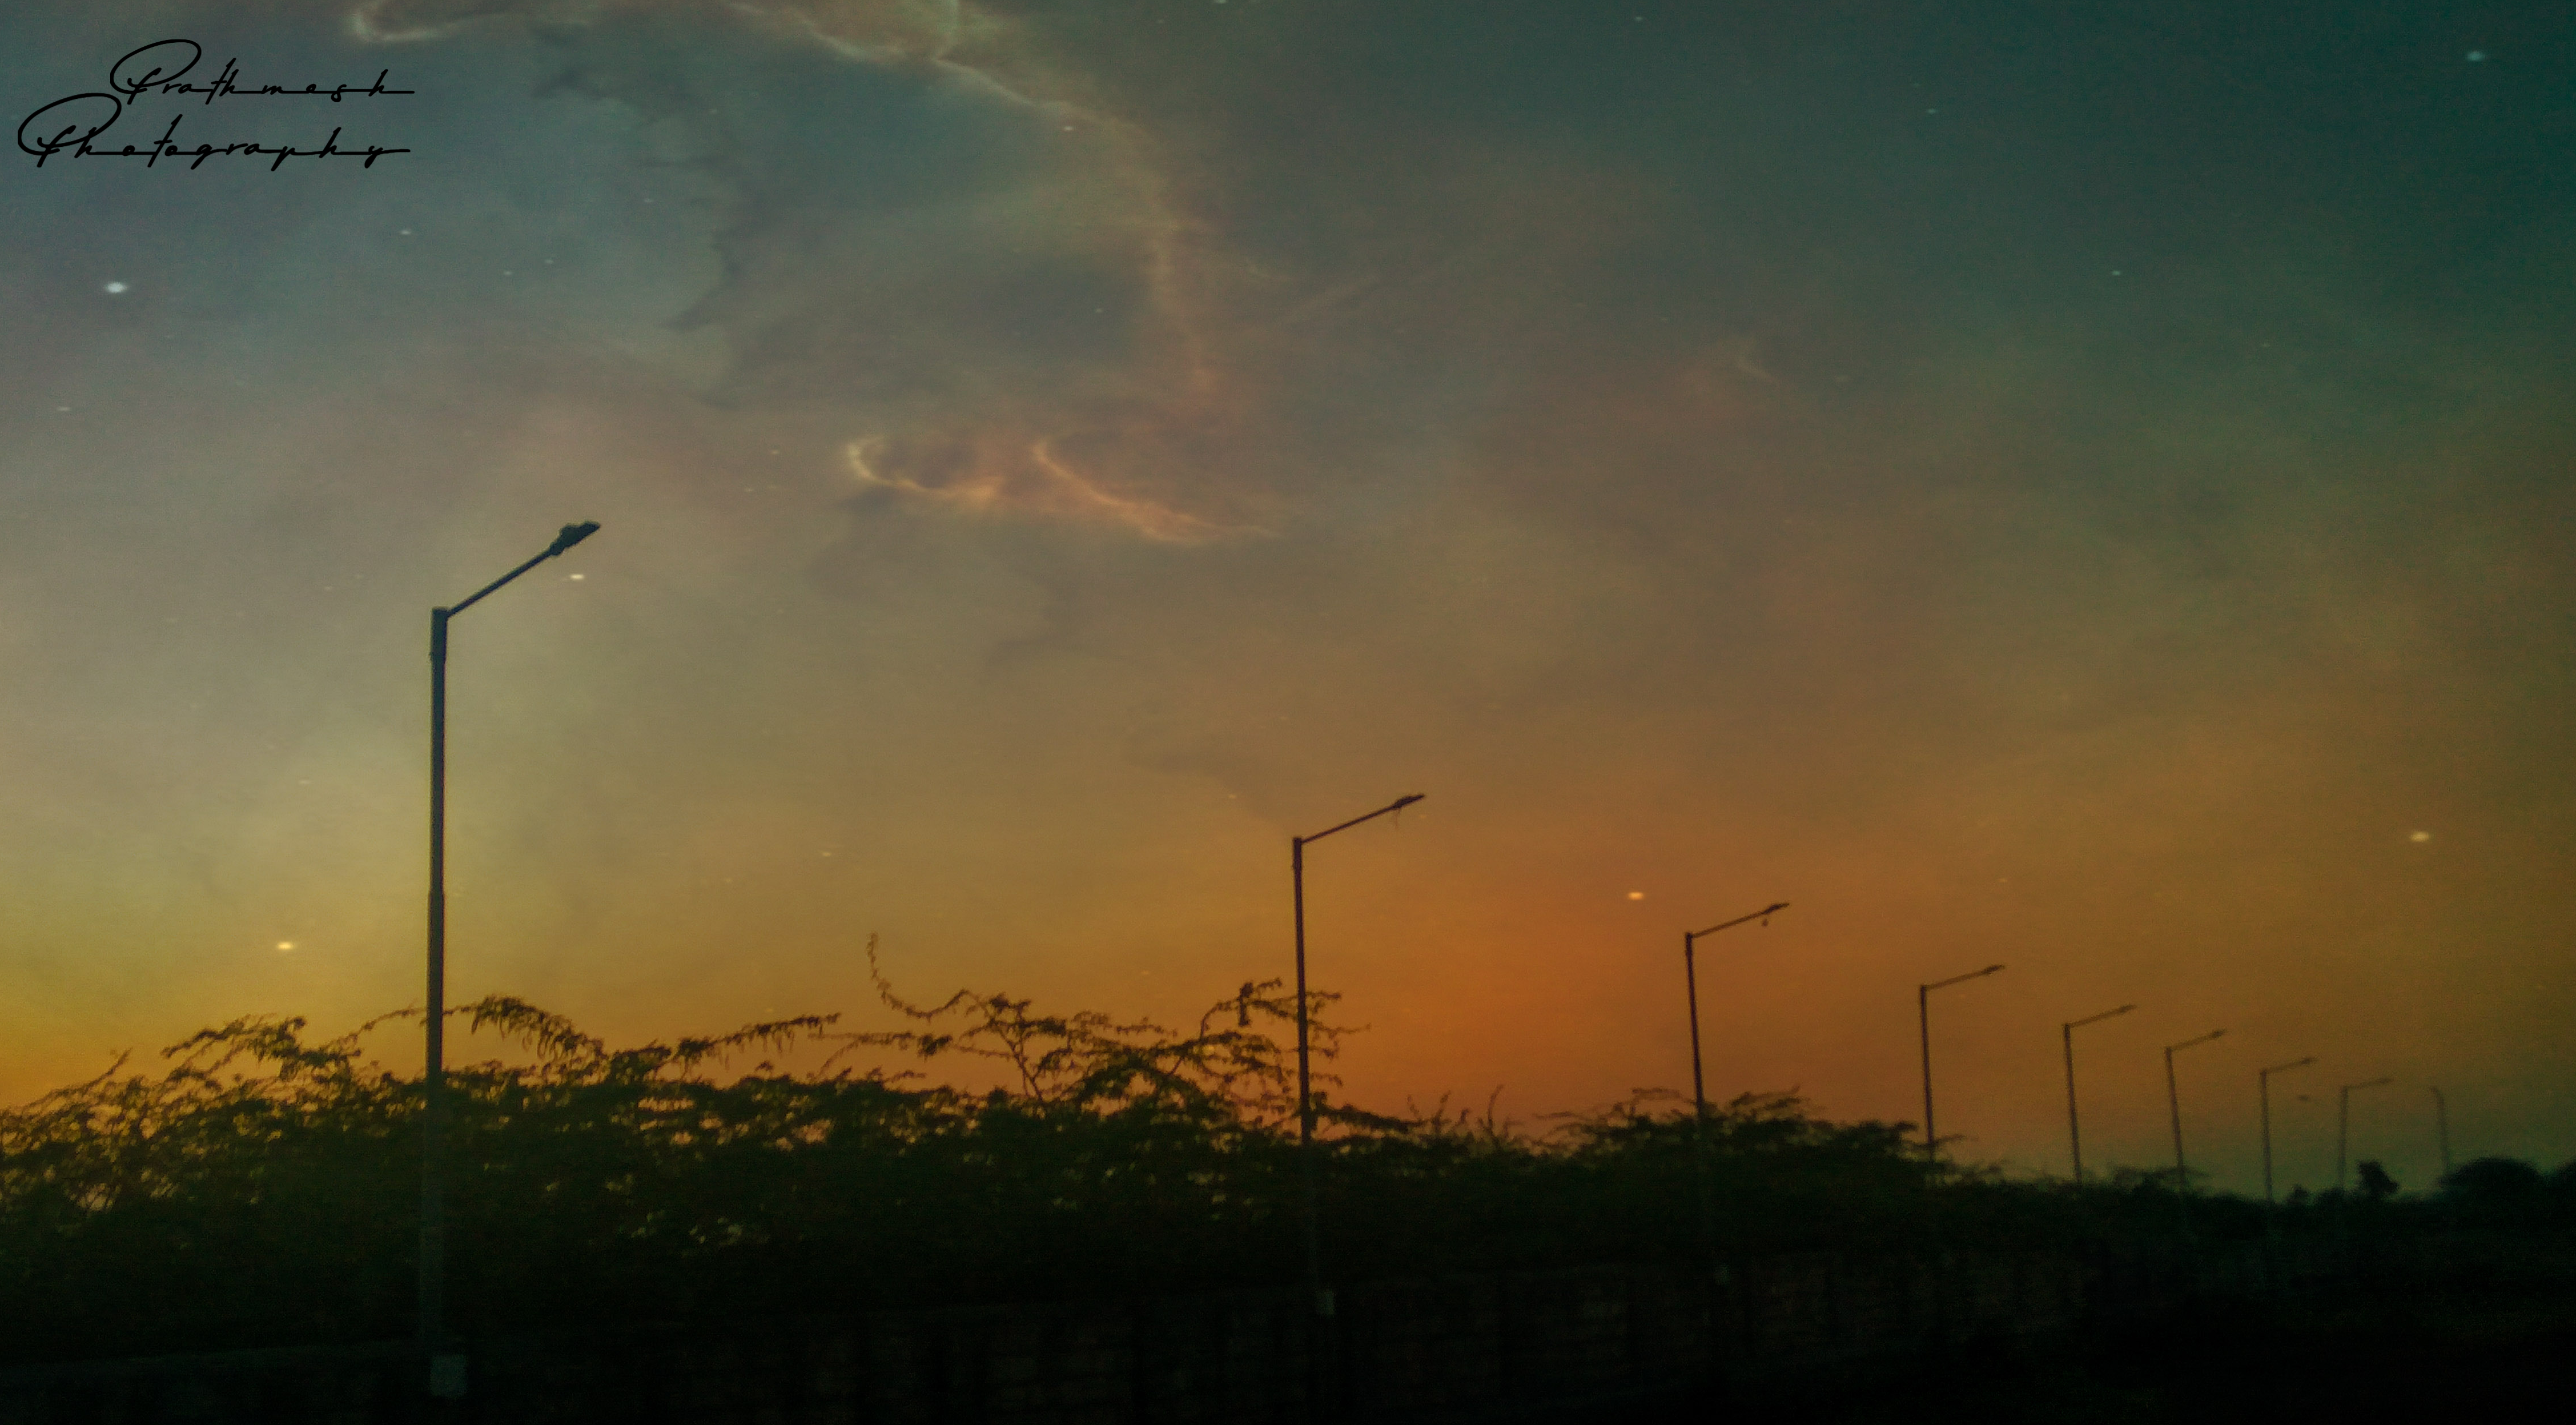 Evenings allow you to forget the bitter worries of the day and get ready for the sweet dreams of night #prathmeshphotography #photographers #photographyislife #photographylovers #moments #lifephotography #realityoflife #evening #photography #happiness #photooftheday #memories #photo #ahmedabad #sunsetphotography